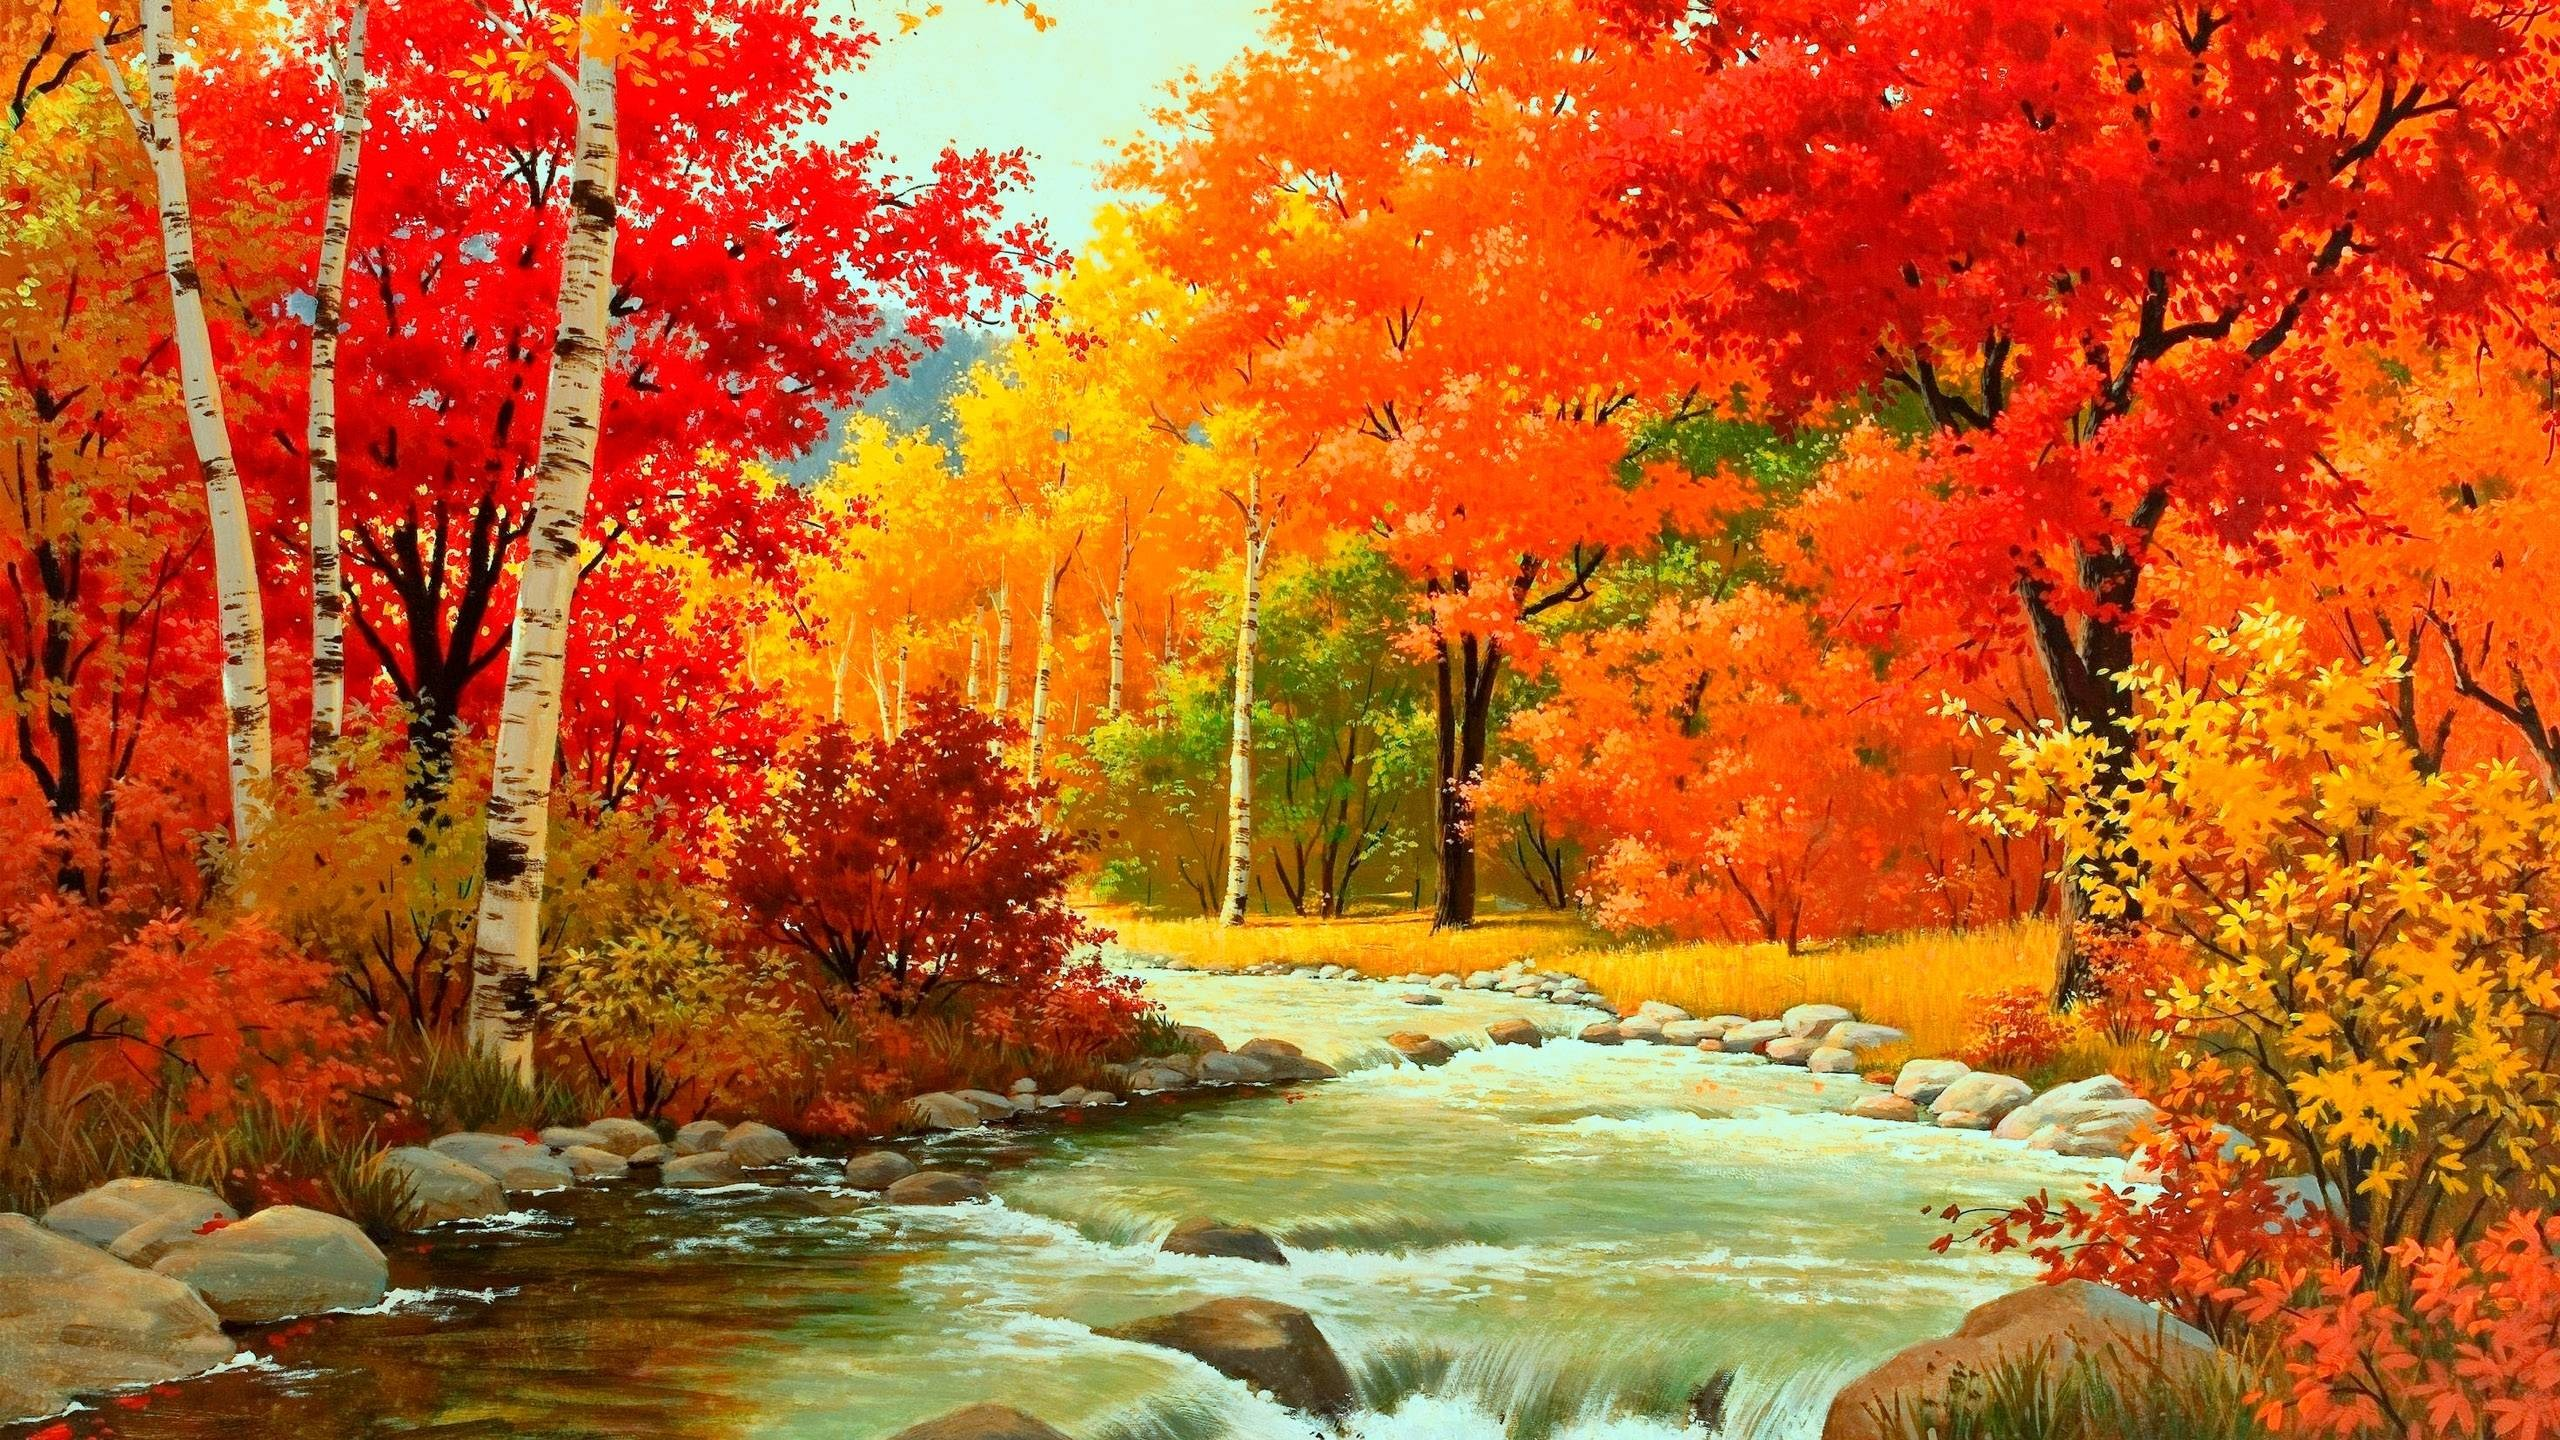 HD 1080p Fall Wallpaper 79 Images